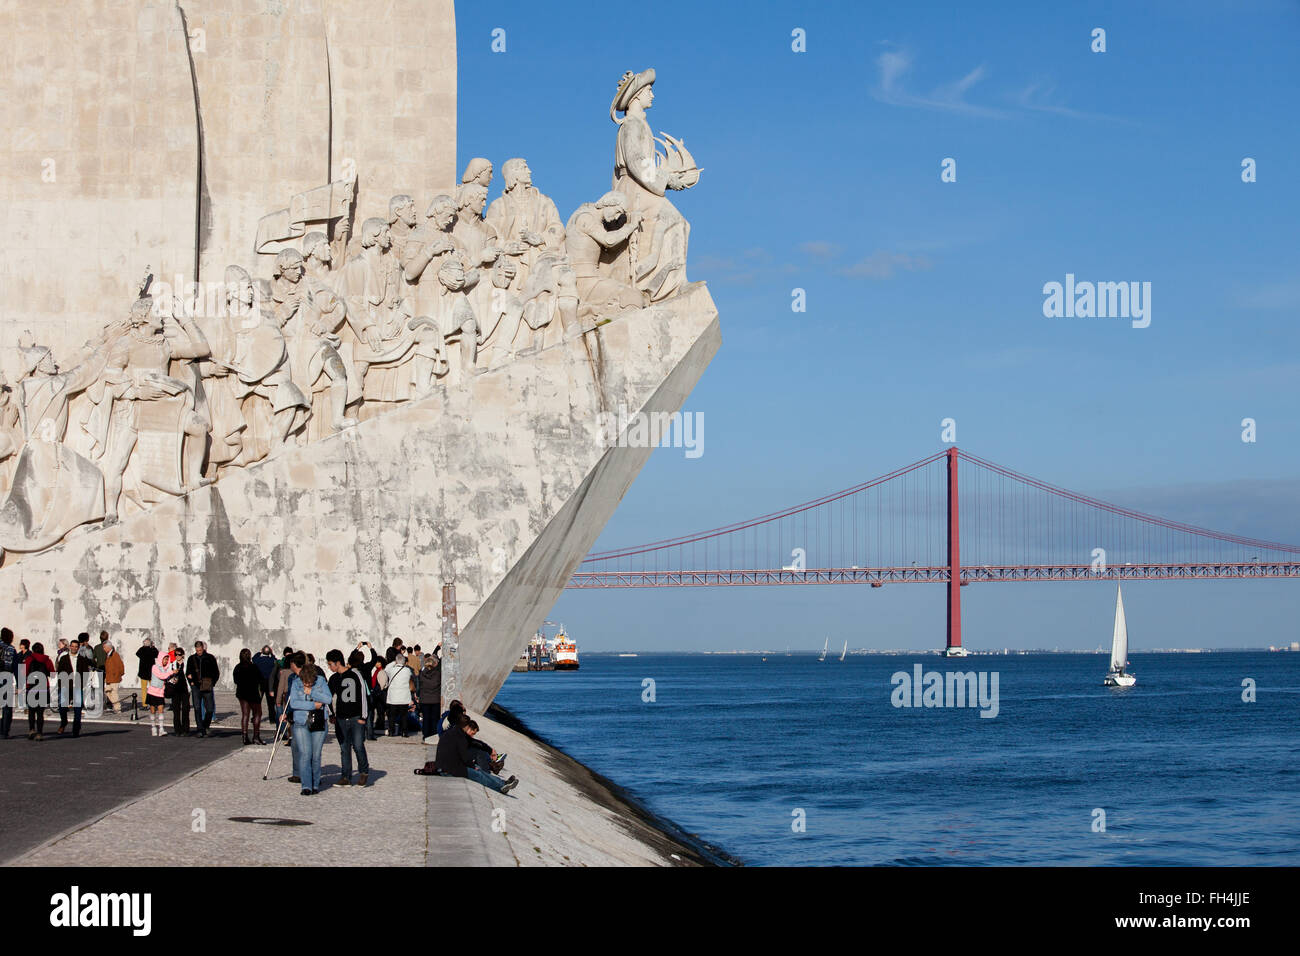 Portugal, Lisbon, Belem, Monument to the Discoveries (Padrao dos Descobrimentos) by the Tagus River and 25 de Abril - Stock Image